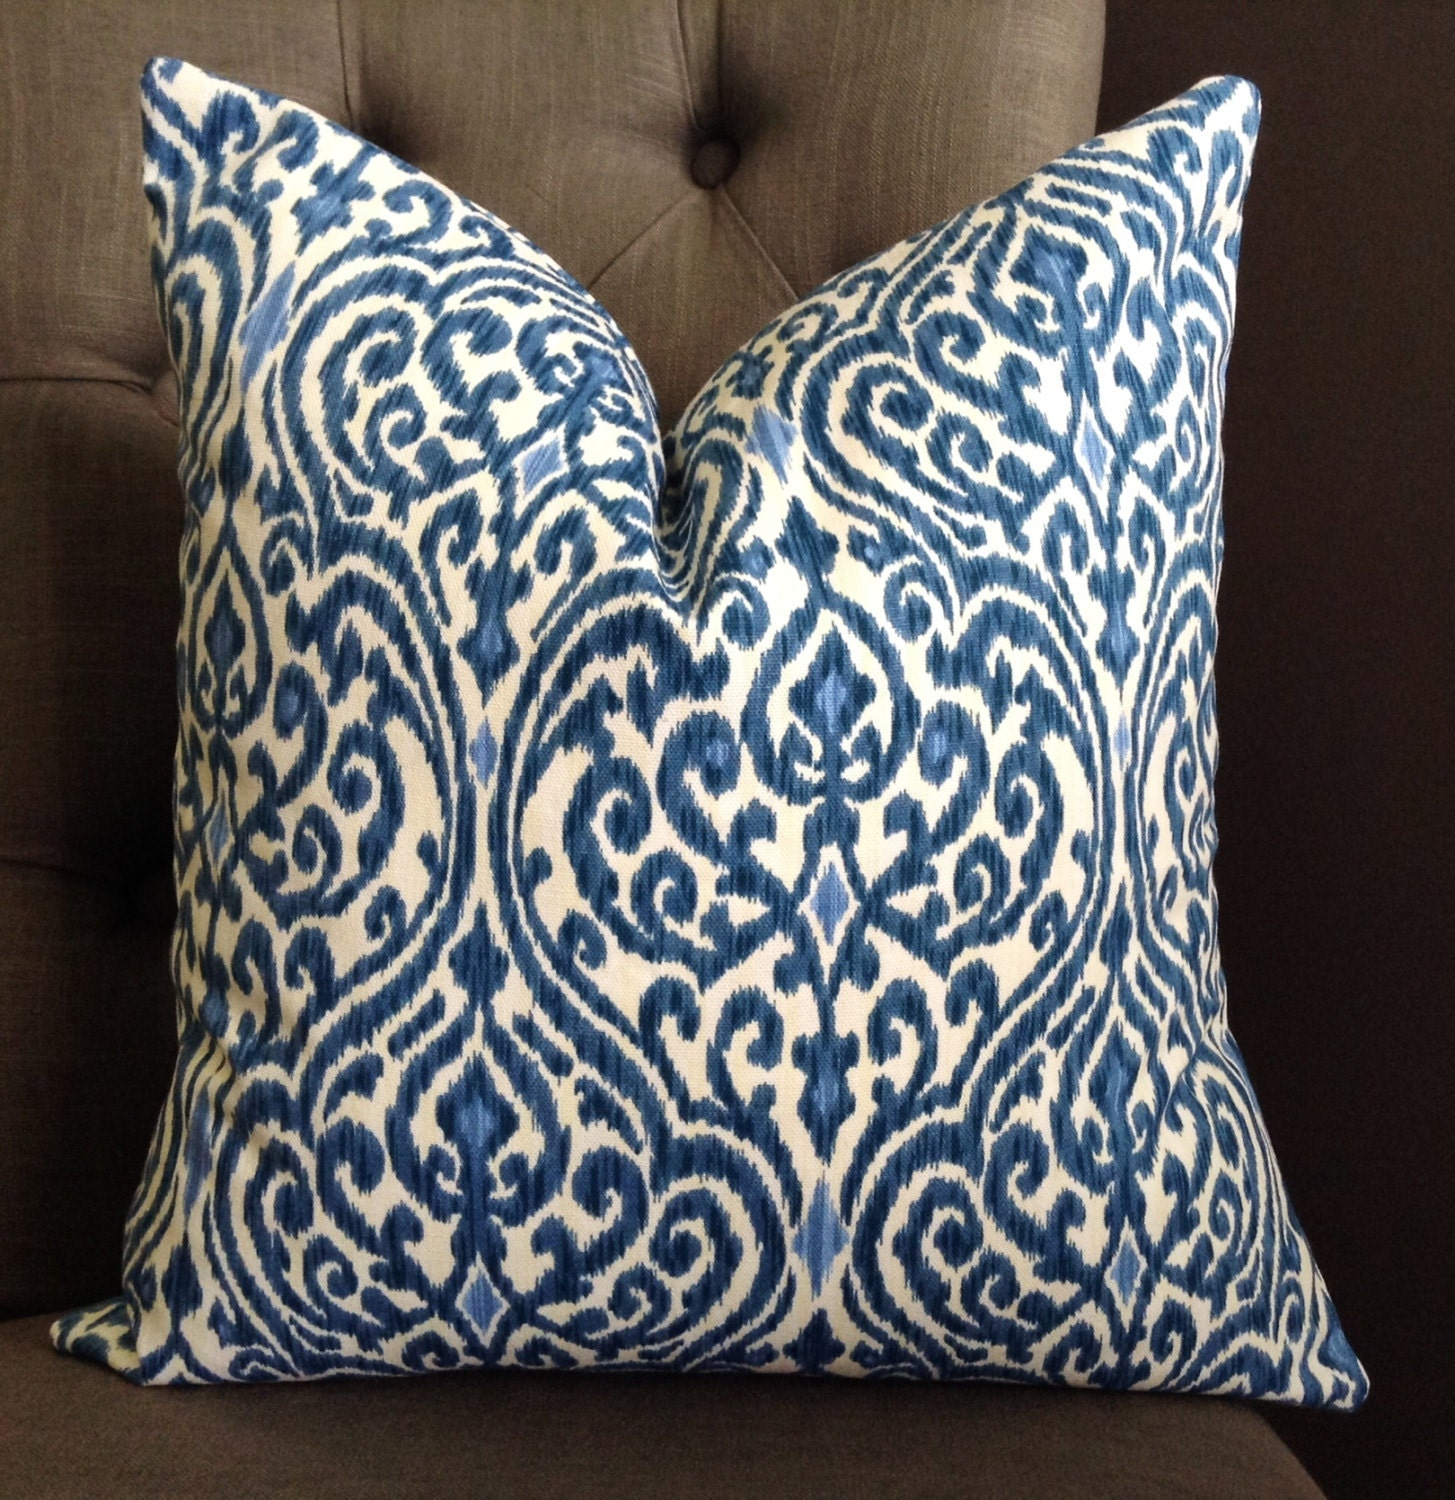 Pillow cases come in standard size pillowcases, Queen pillow cases and King pillowcases. White is the standard color for bulk pillowcases, but we also offer pillowcases in bone, seafoam and rose colored pillow cases.